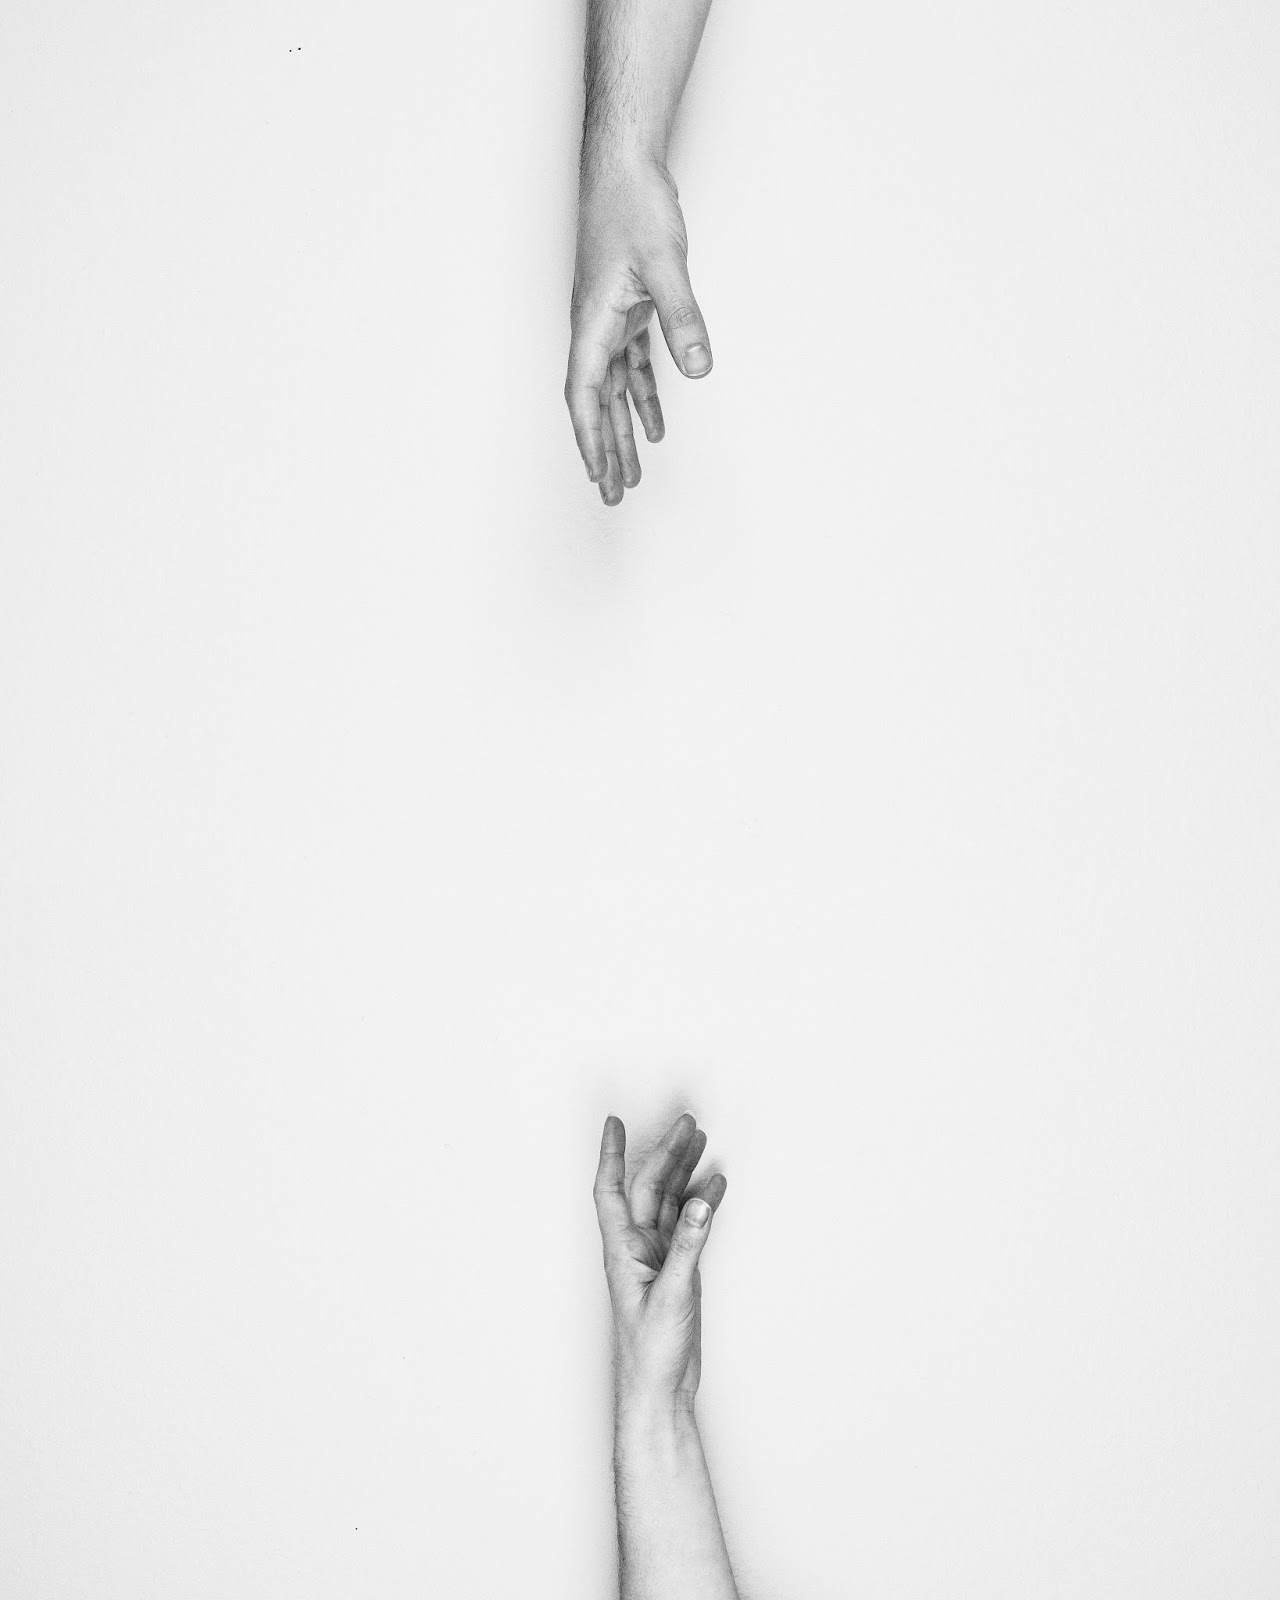 Two hands reaching out for one another